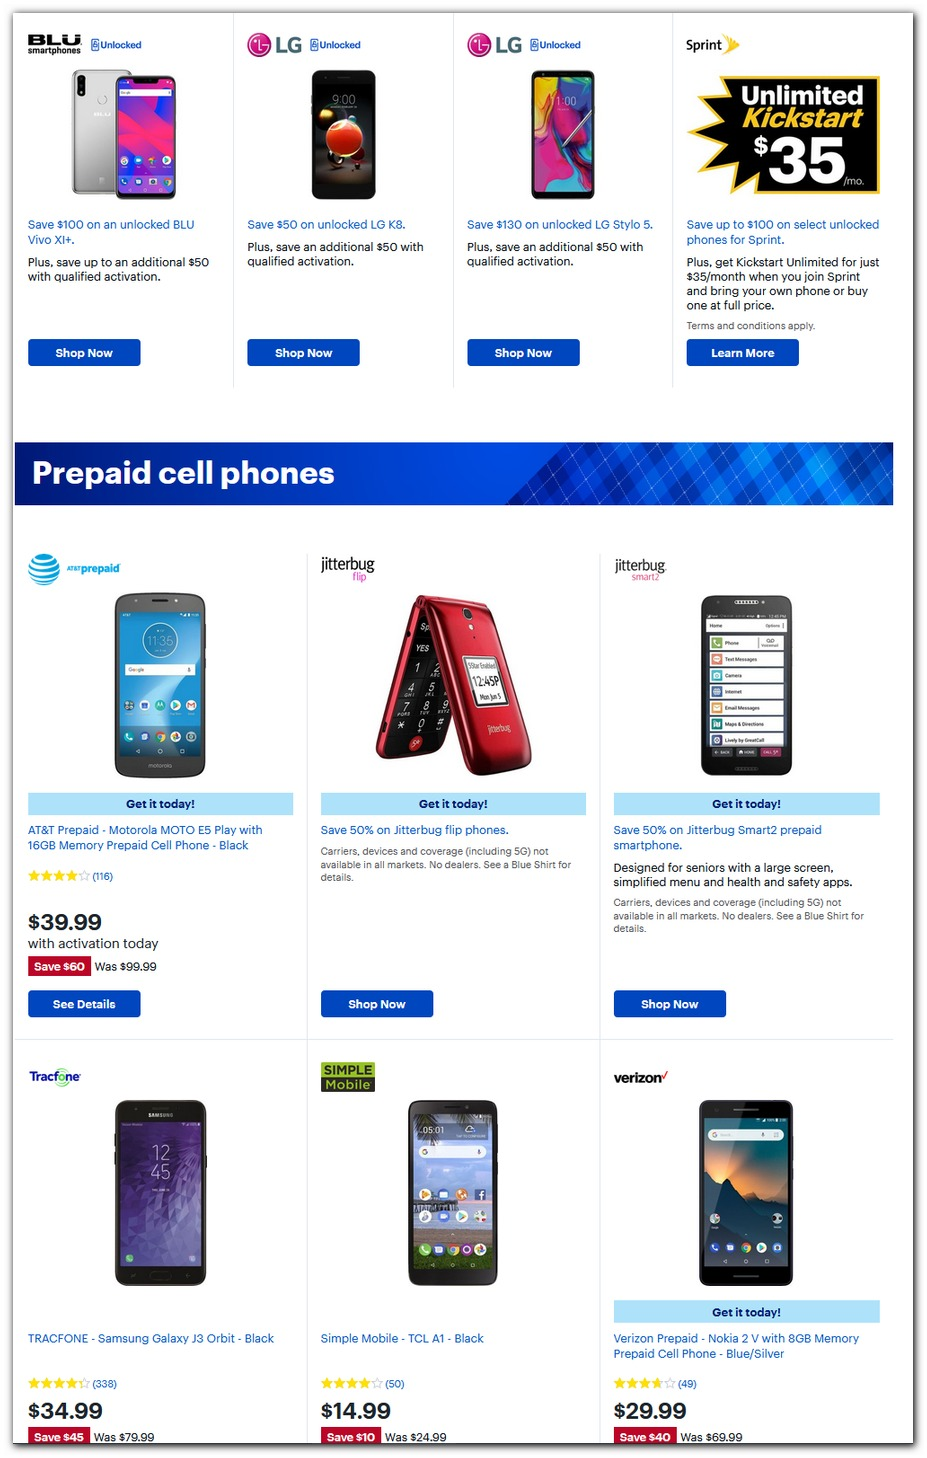 Prepaid Cell Phones